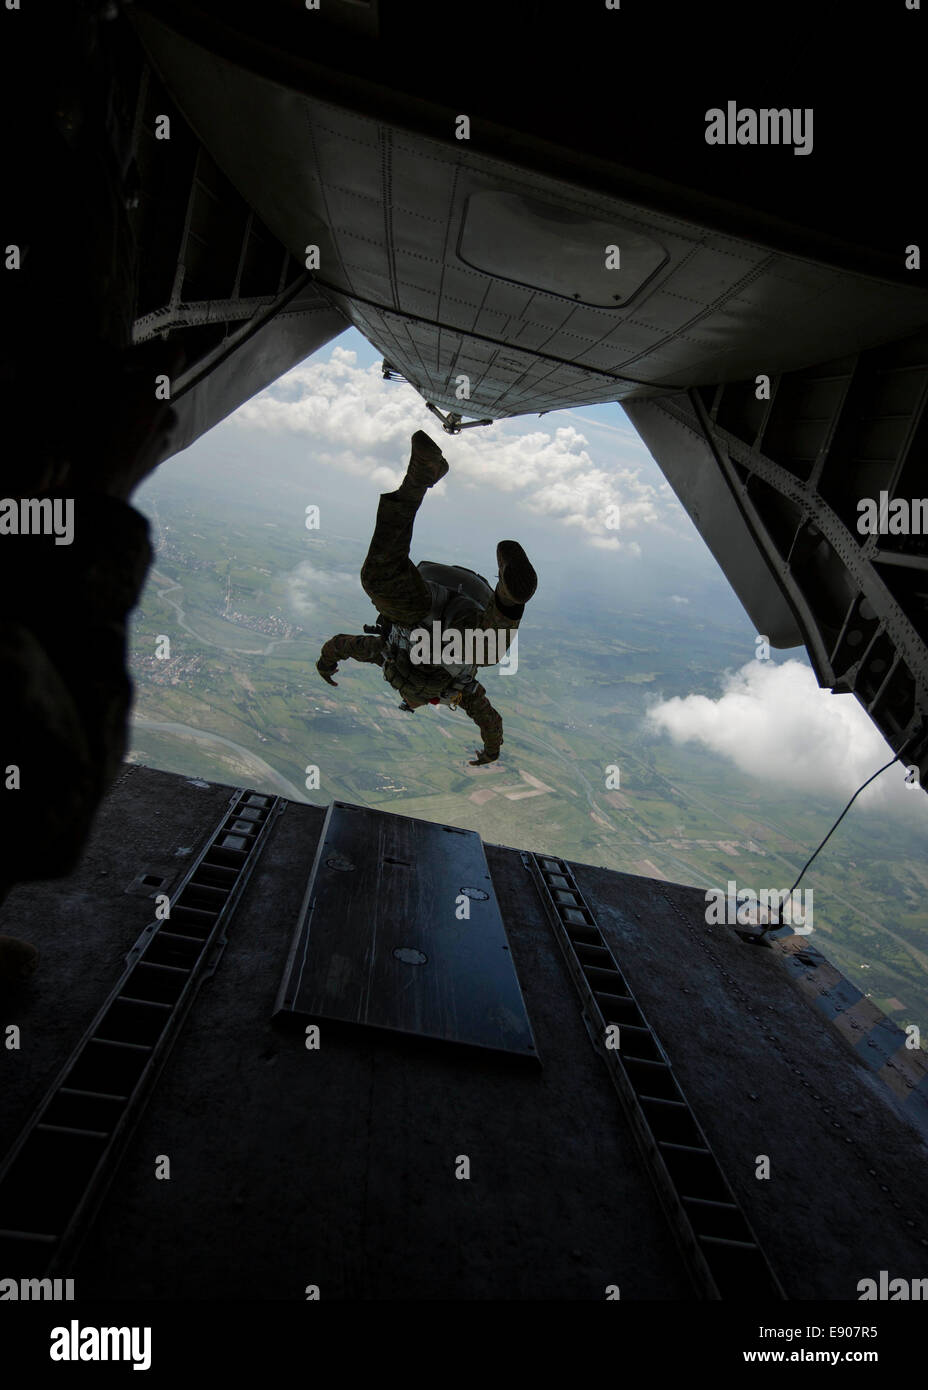 Philippine Army Maj. Velmor Manaois conducts a free fall jump from a U.S. Marine Corps CH-53E Super Stallion helicopter - Stock Image